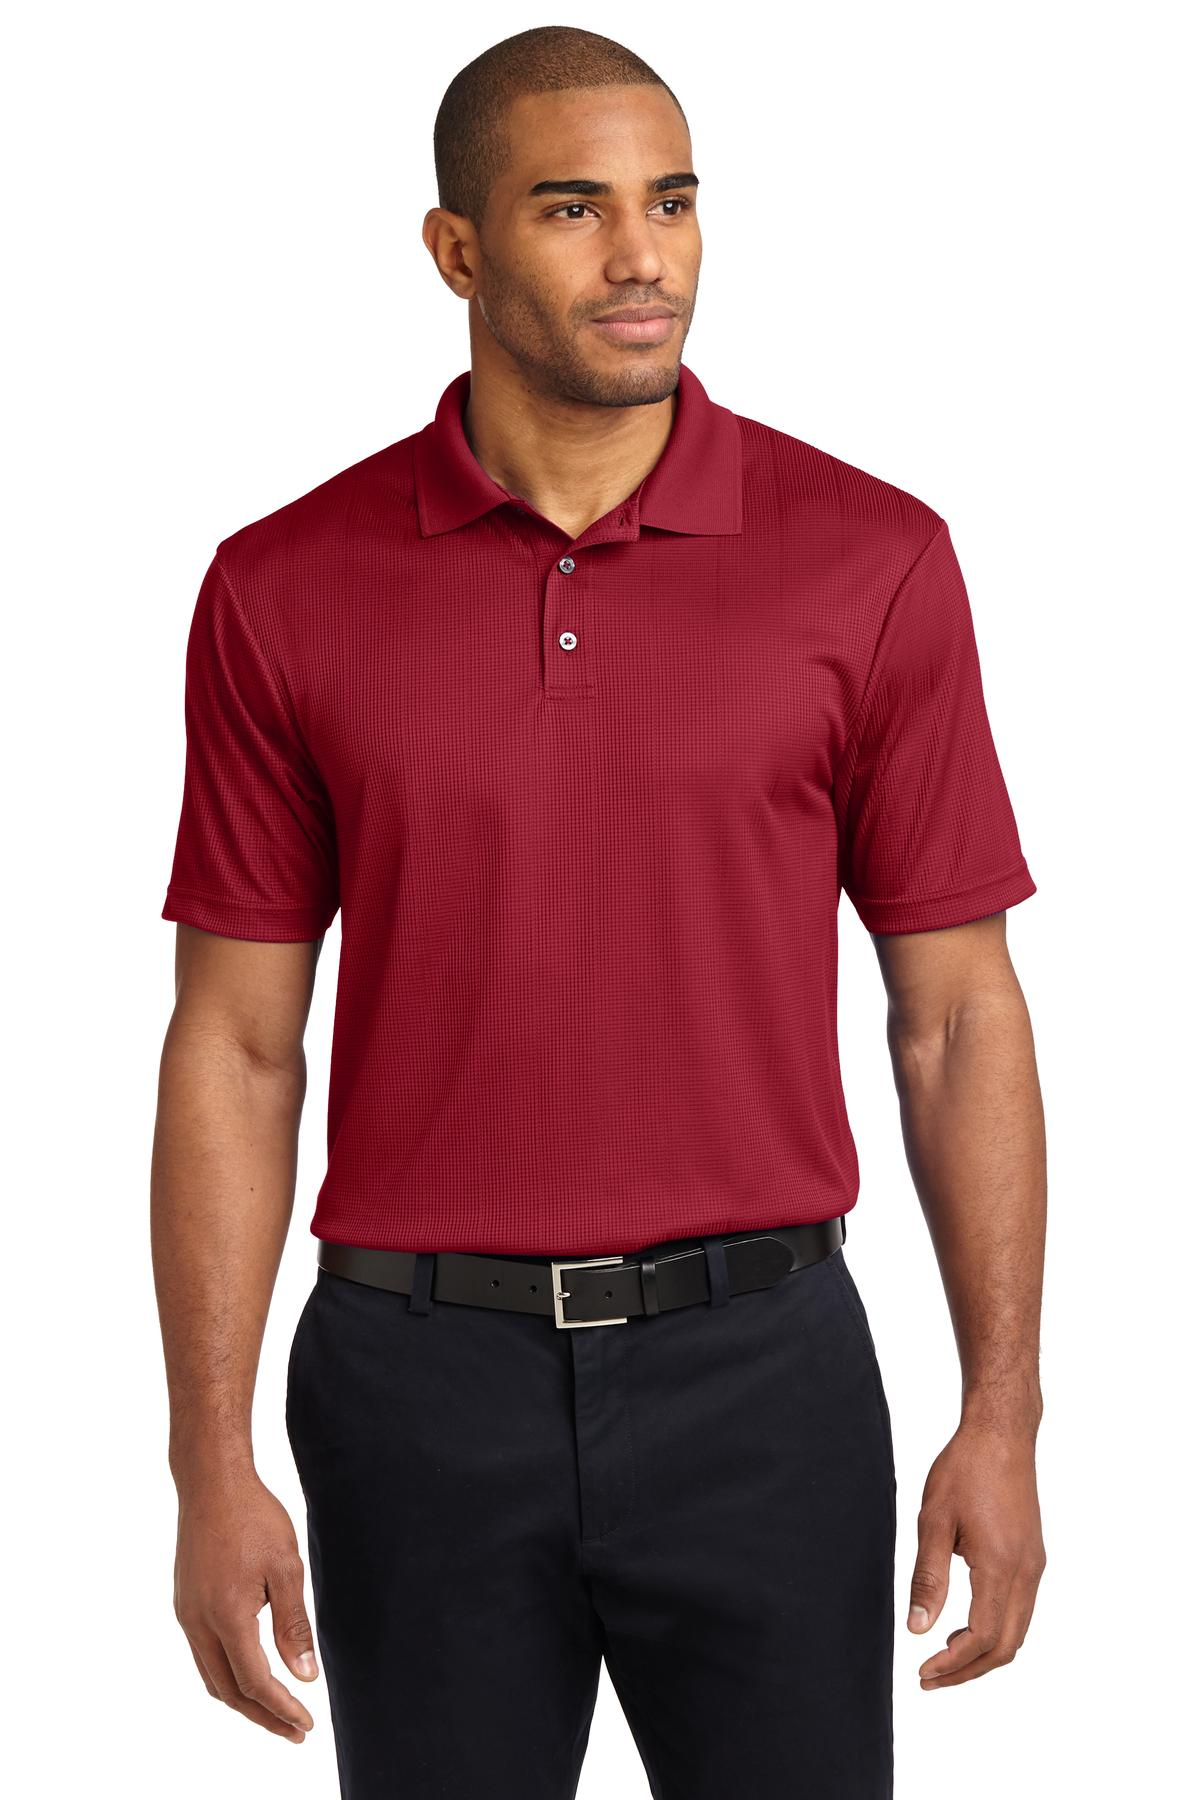 Royal Port Authority Silk Touch Performance Polo.